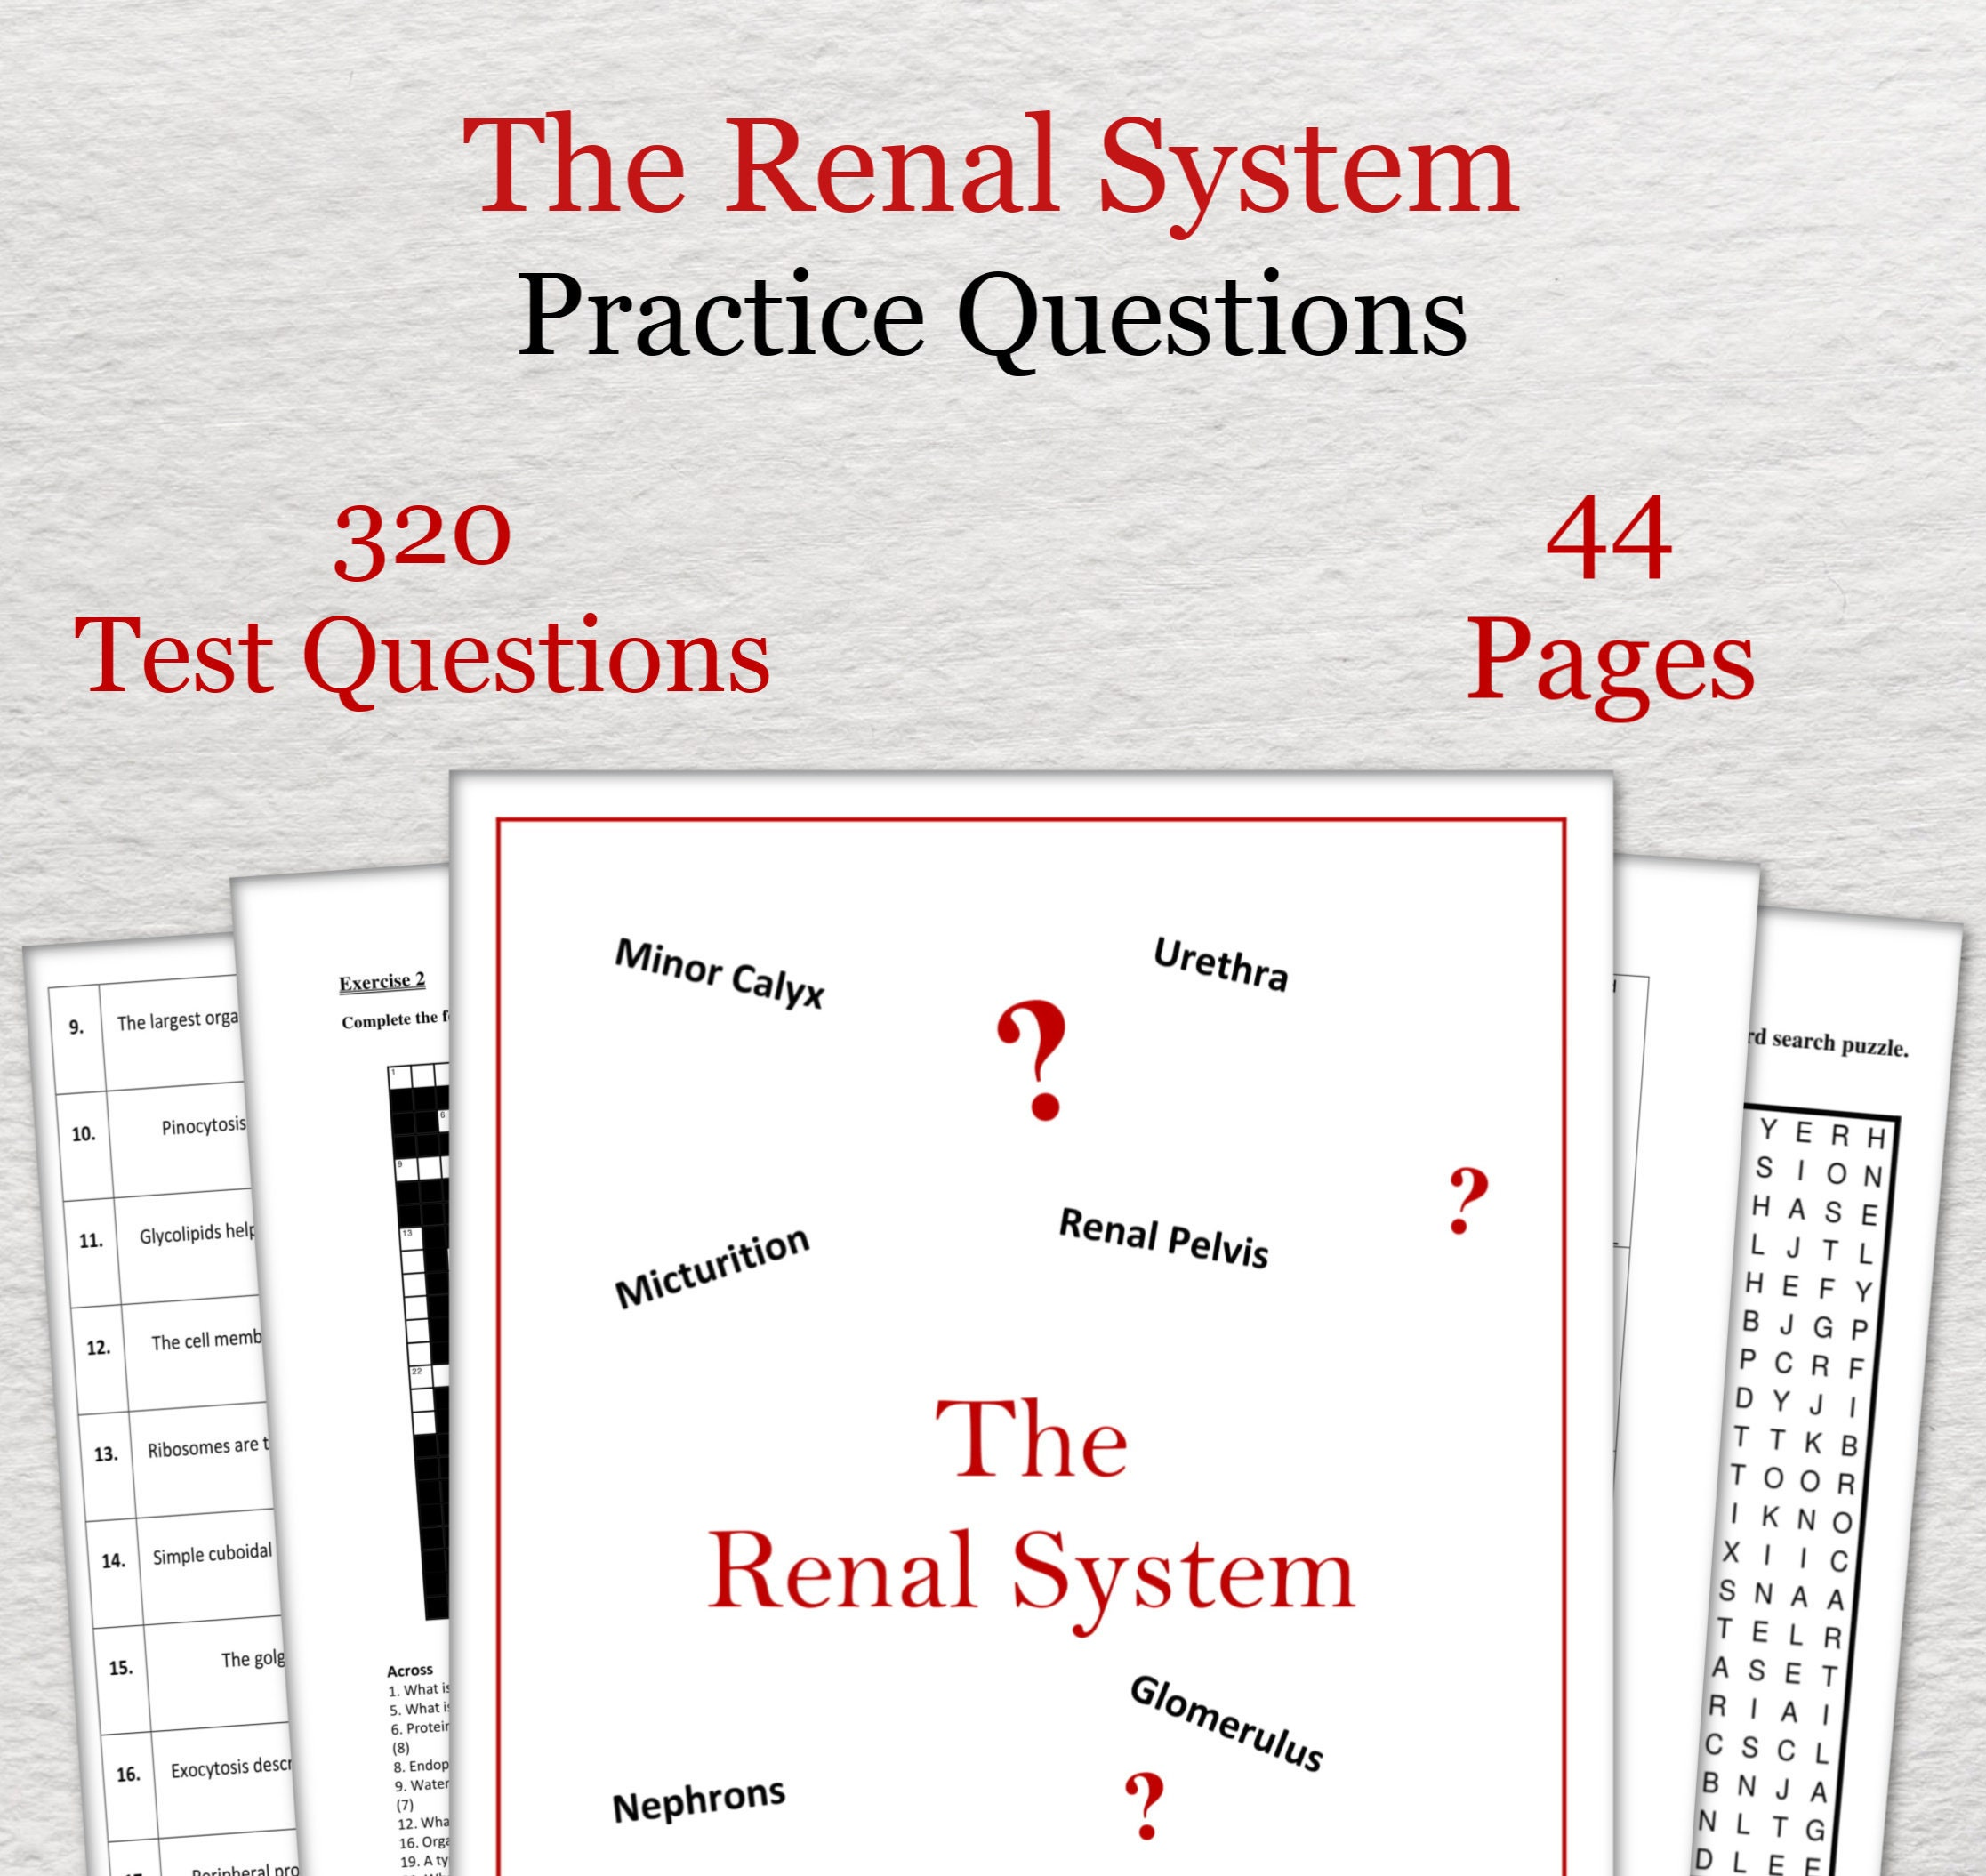 Renal System Practice Questions - Anatomy and Physiology Revision